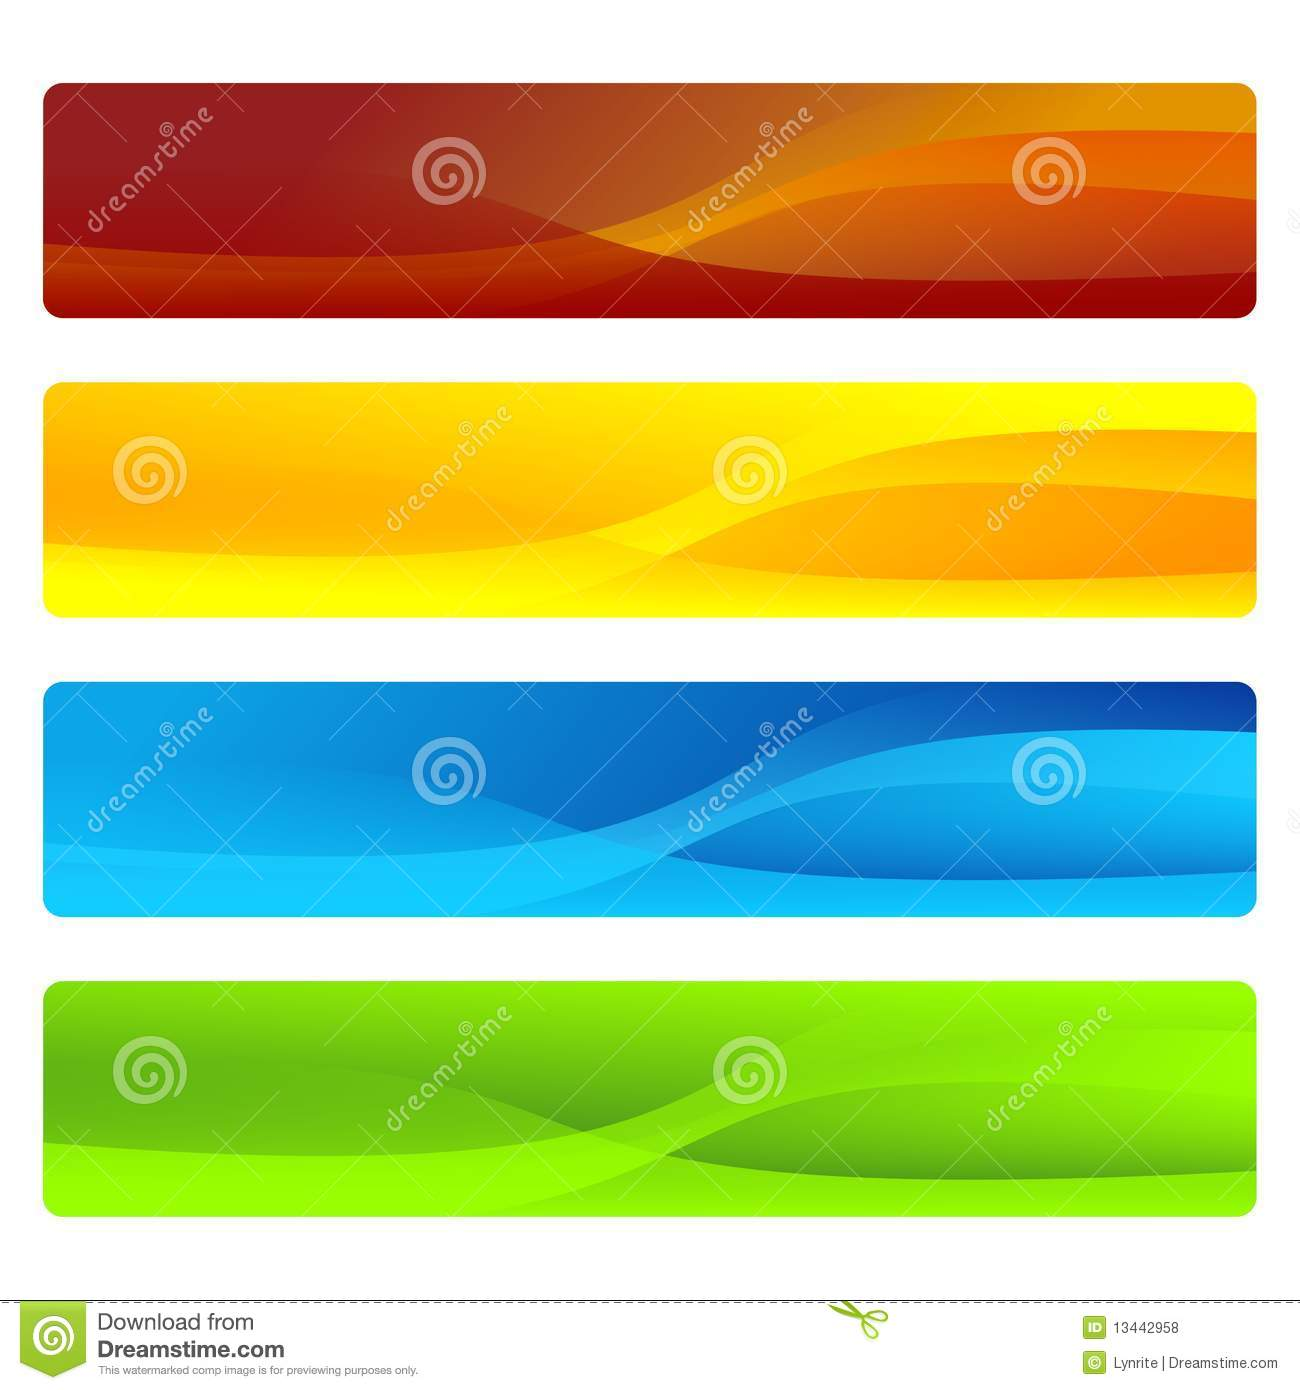 Shield design set royalty free stock photos image 5051988 - Headers Or Banners Royalty Free Stock Photos